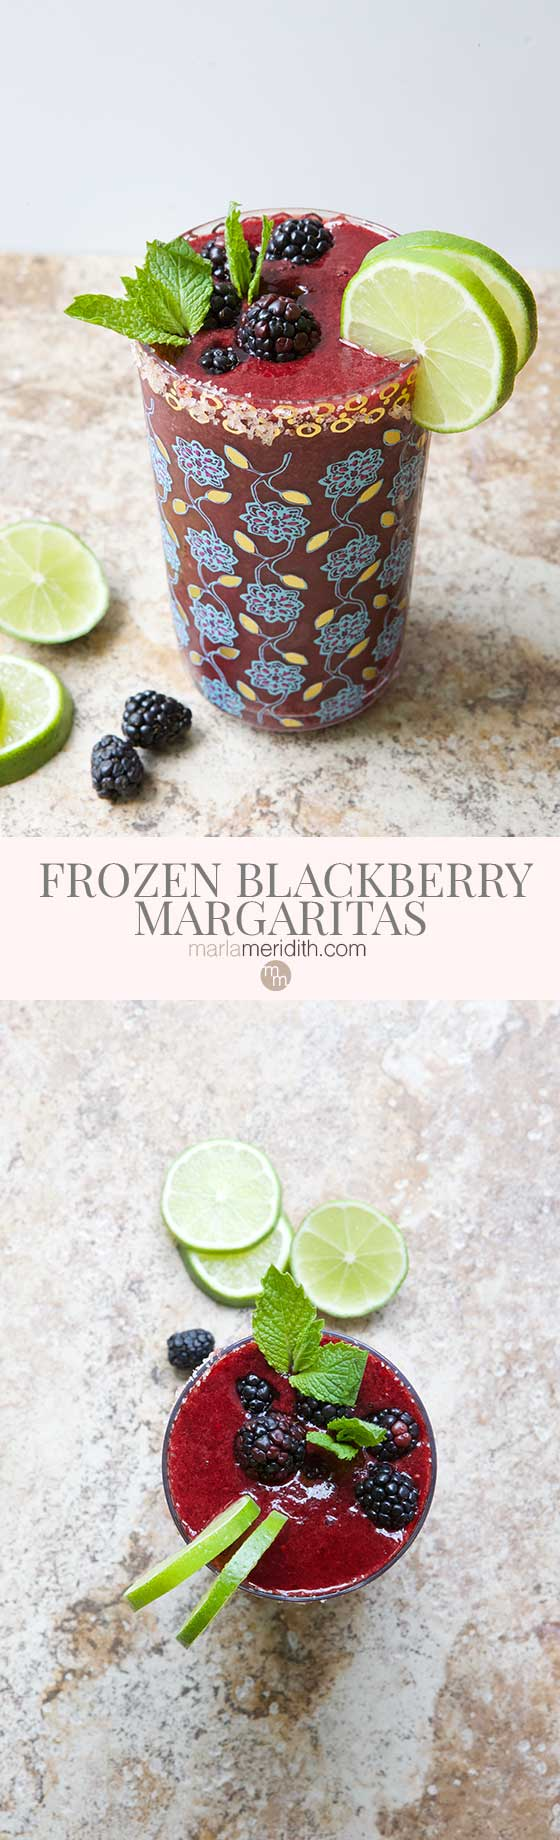 We love these delicious Frozen Blackberry Margaritas on hot summer days. A great happy hour recipe that comes together in minutes! MarlaMeridith.com